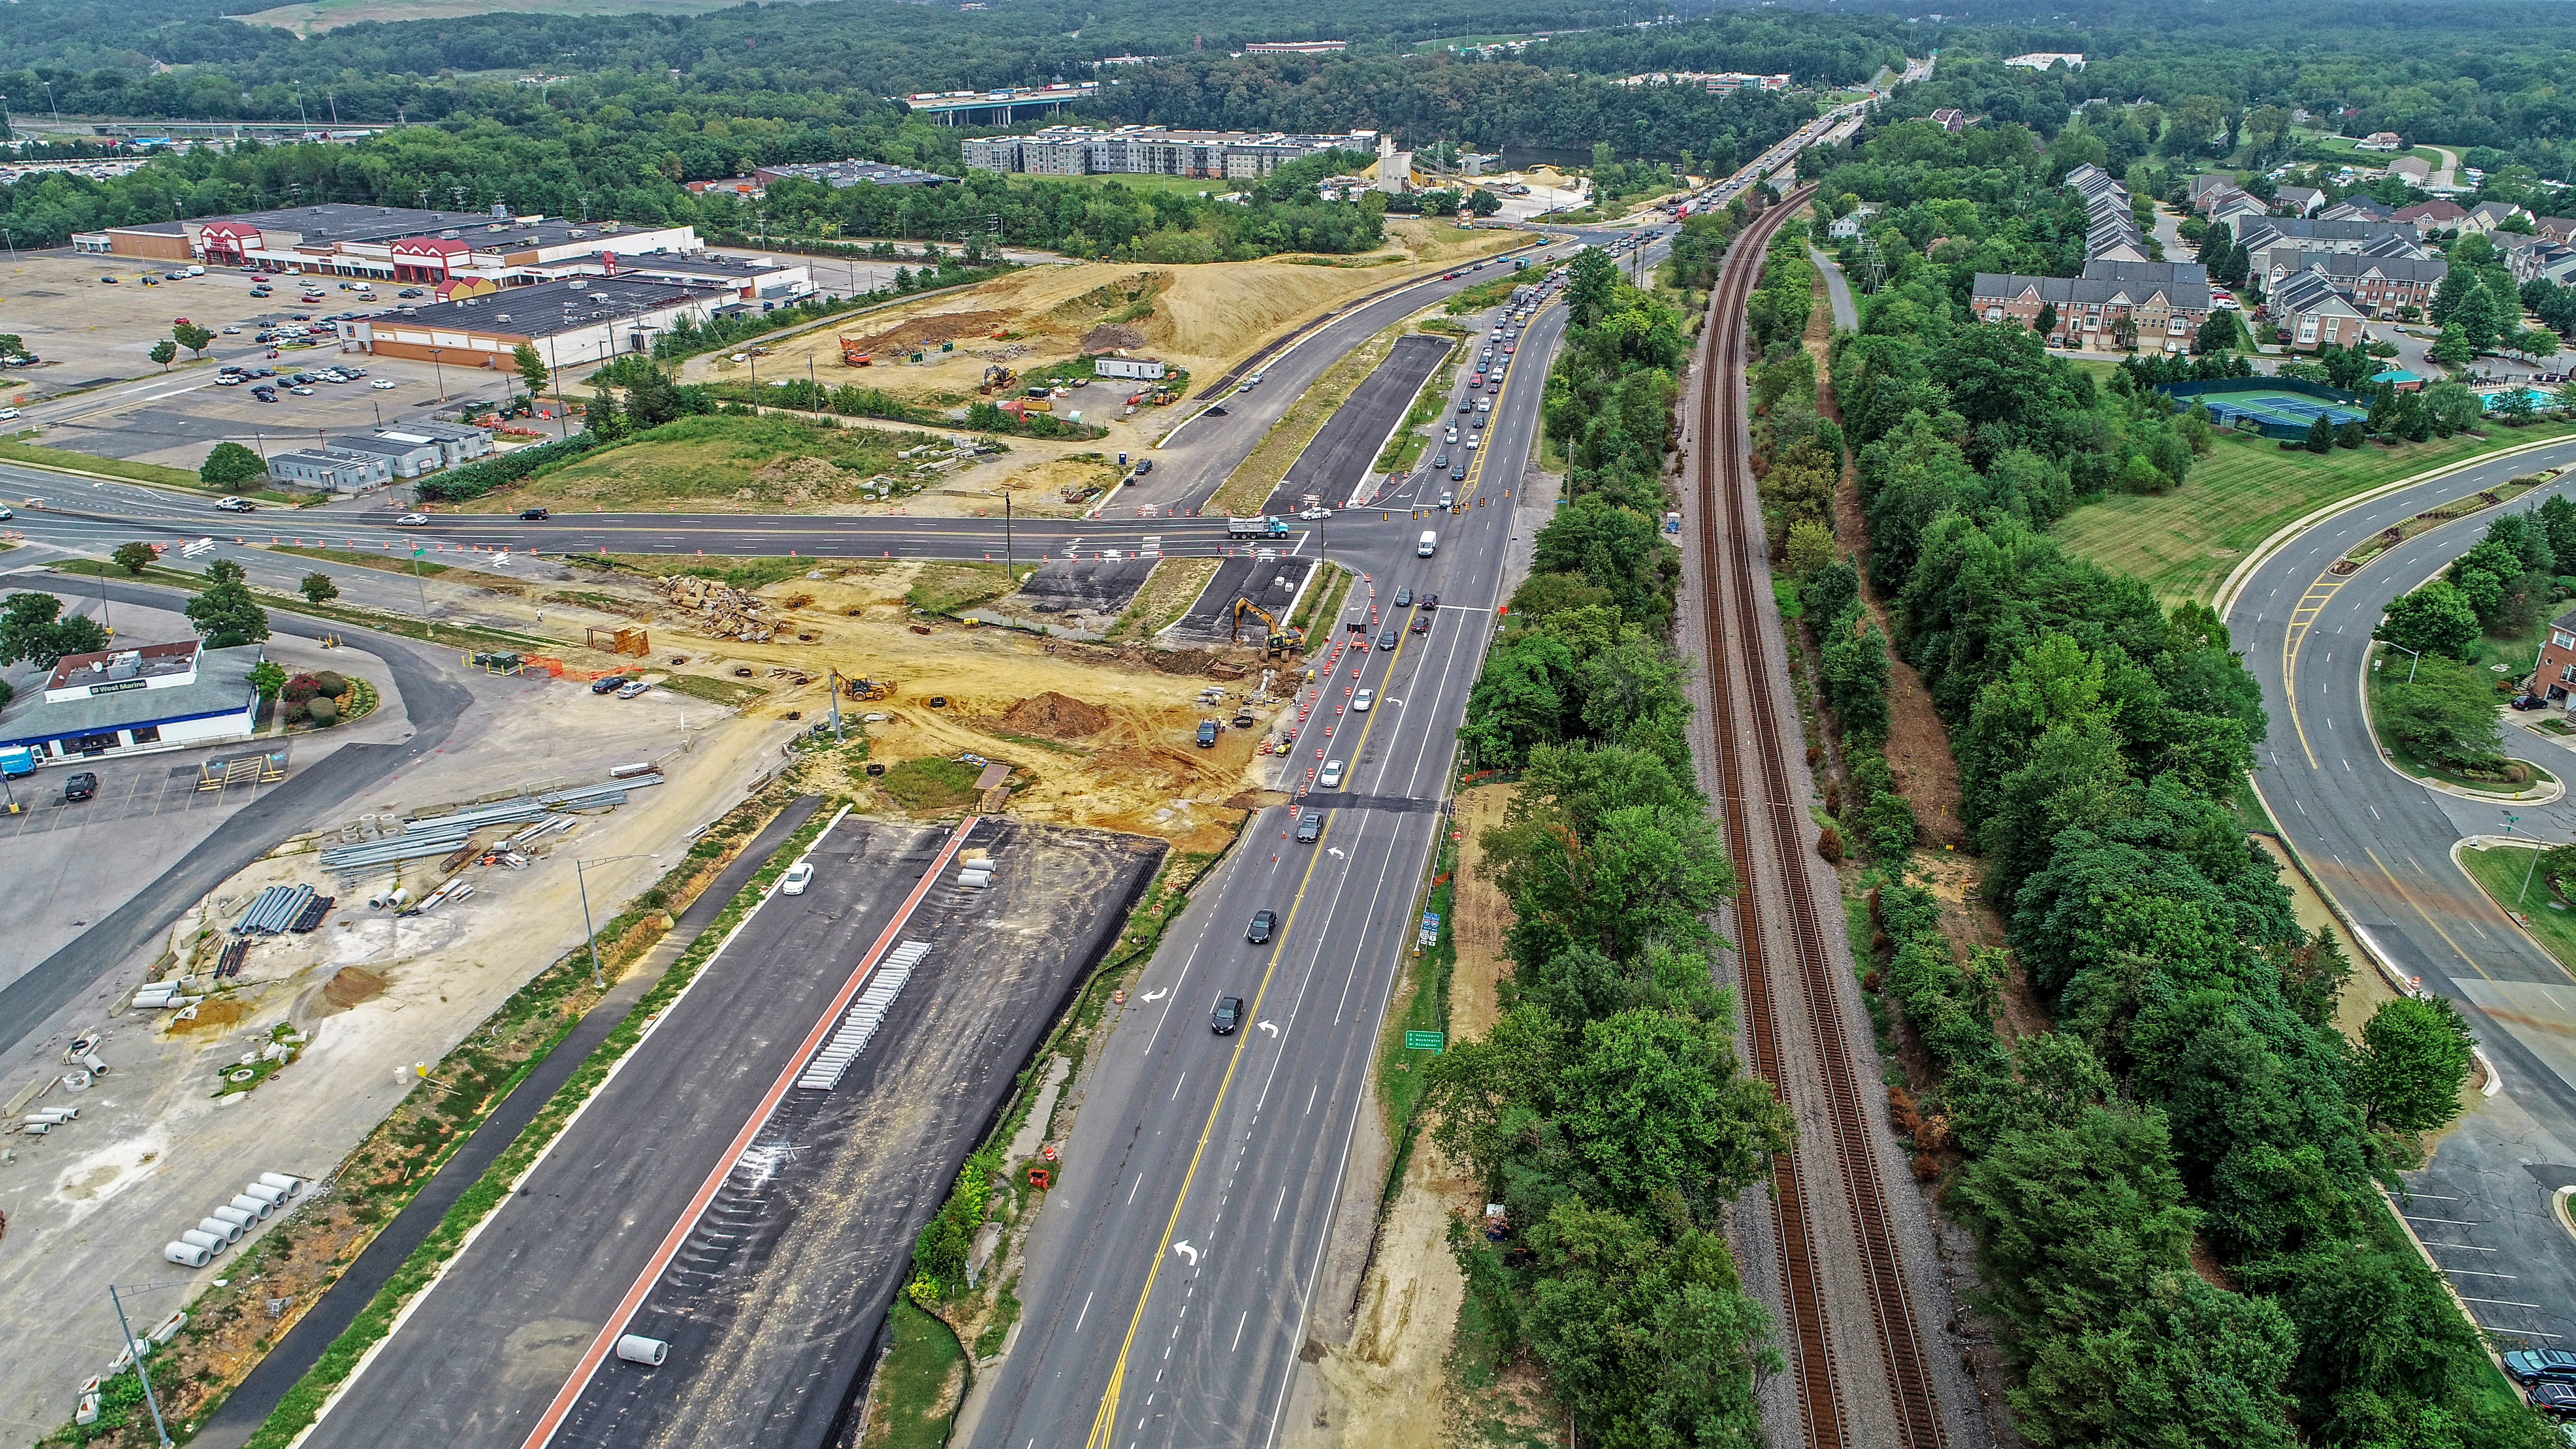 ROUTE 1 WIDENING IN PRINCE WILLIAM COUNTY